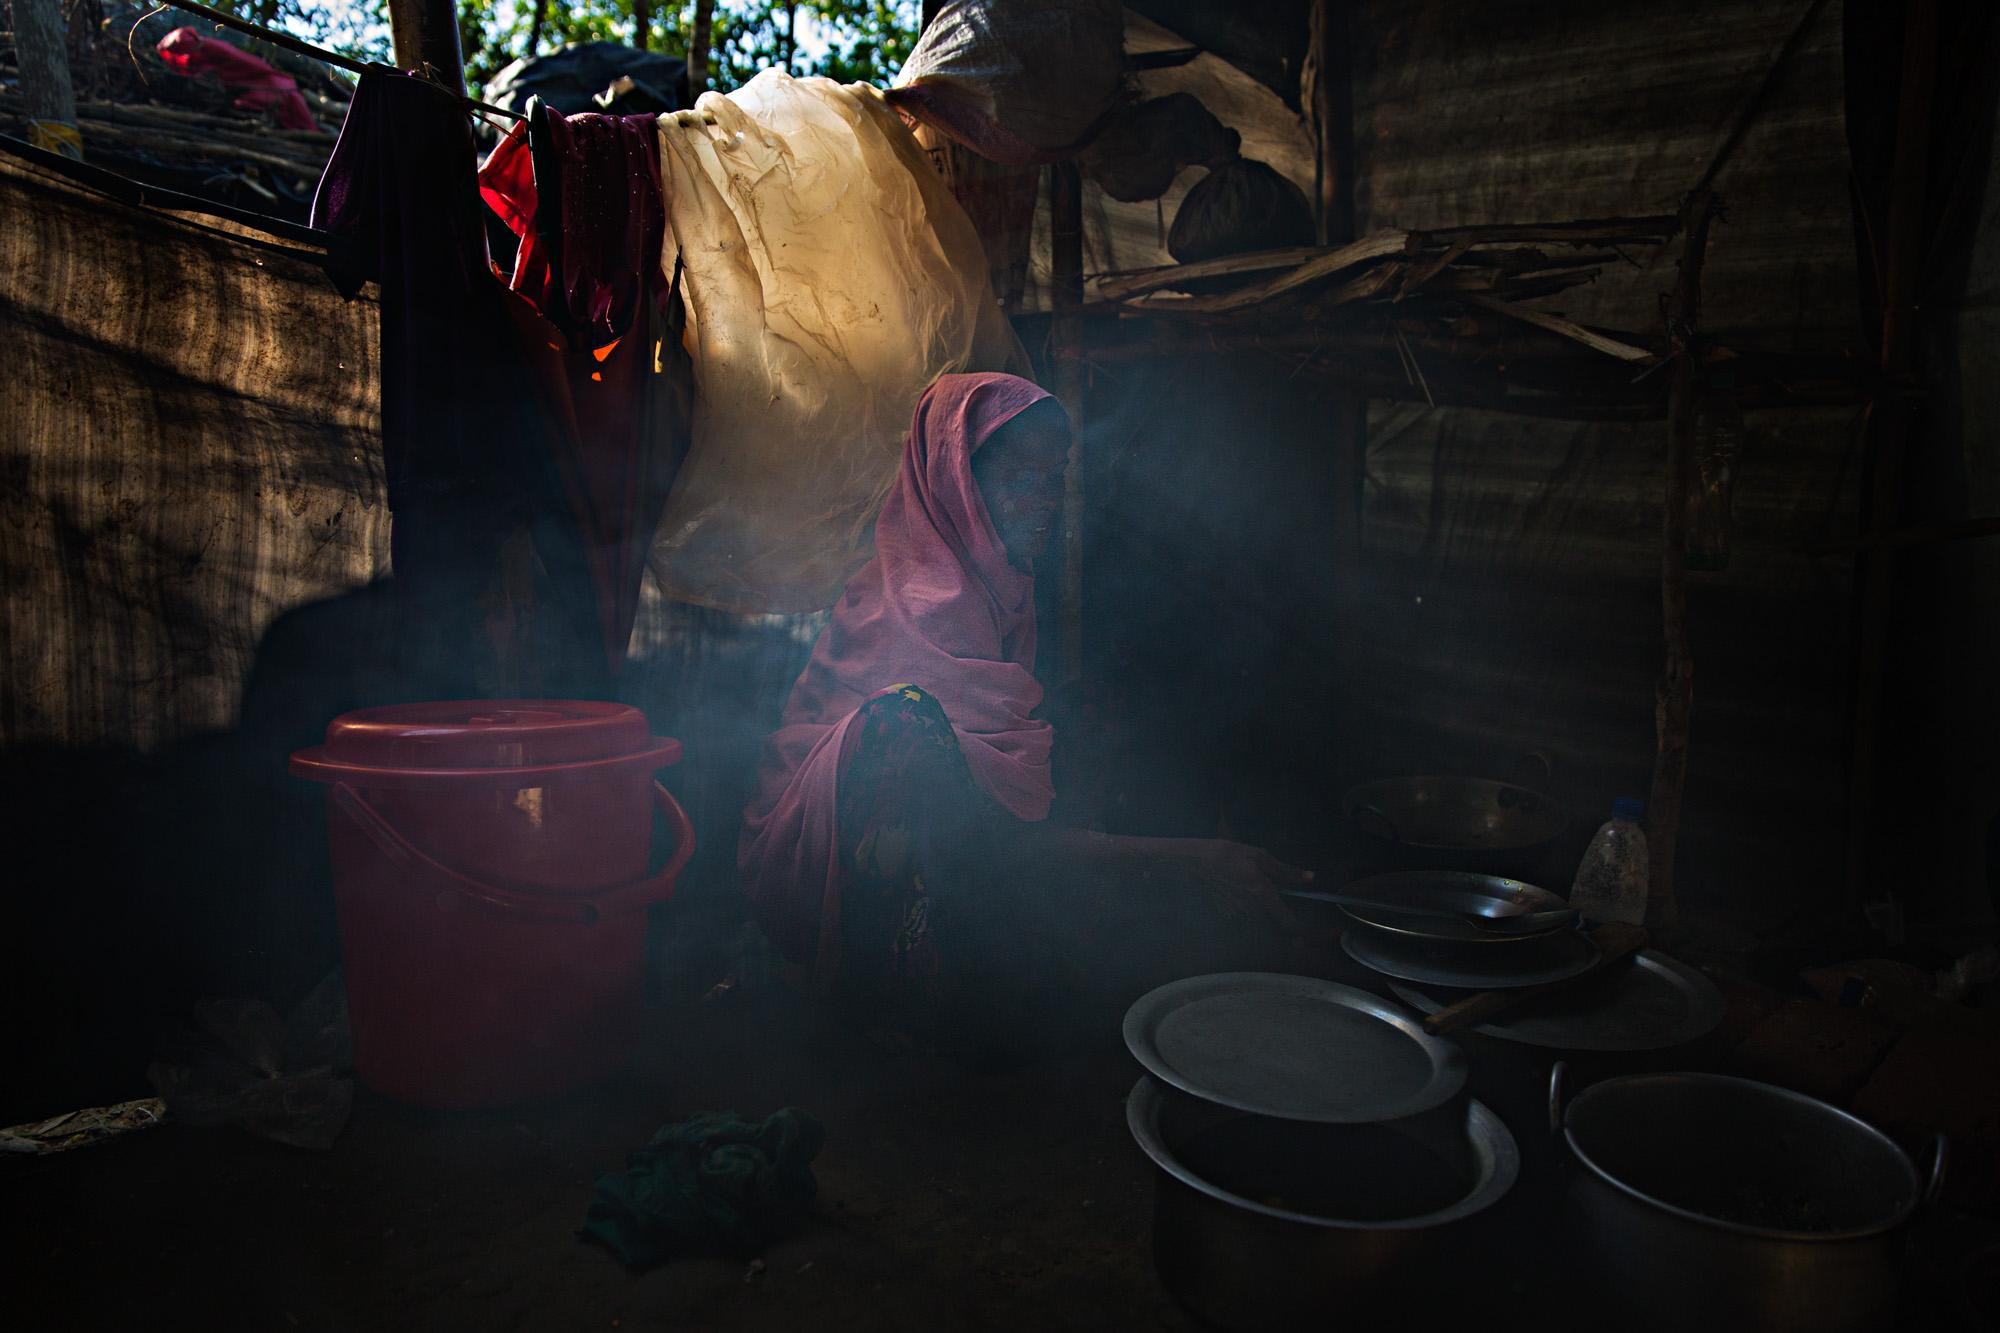 A Rohingya woman cooks in her hut in a camp outside of Cox's Bazar, Bangladesh.